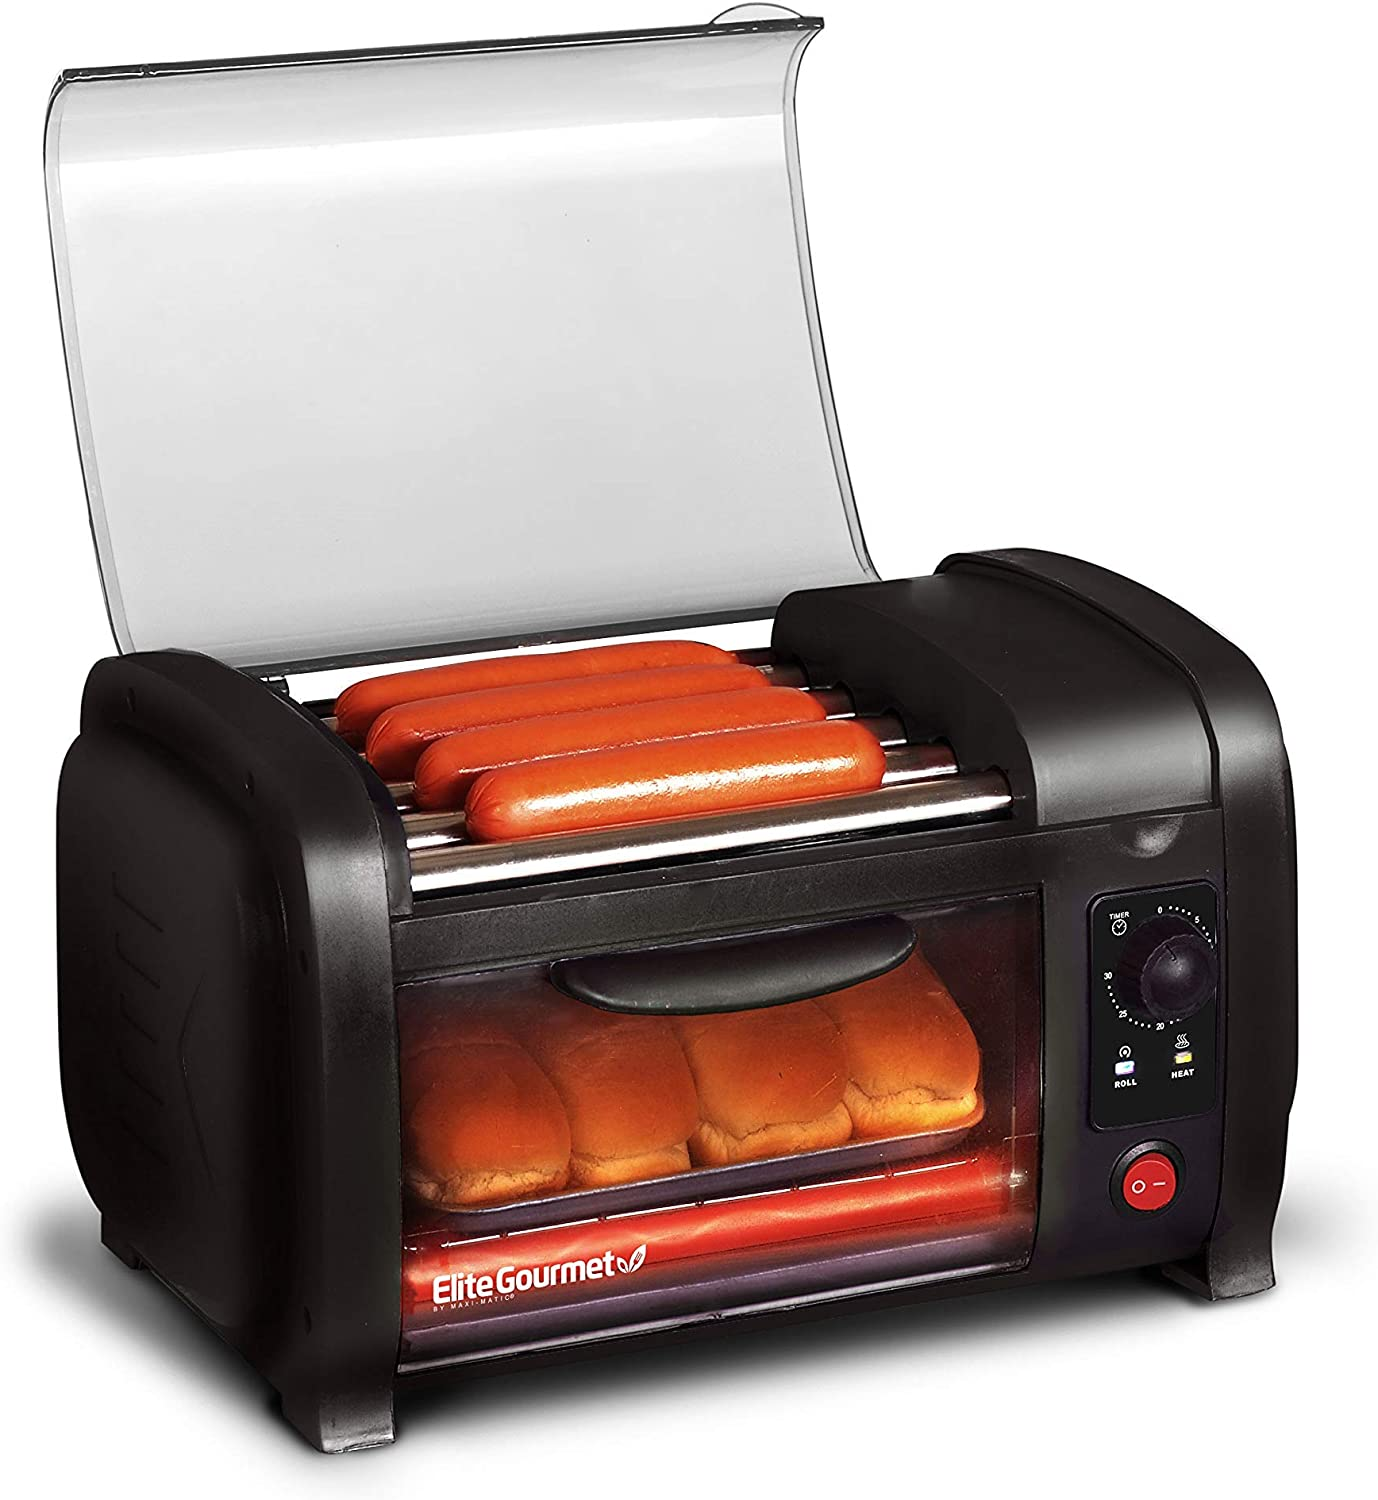 Elite Gourmet EHD-051B Hot Dog Toaster Oven, 30-Min Timer, Stainless Steel Heat Rollers Bake & Crumb Tray, World Series Baseball, 4 Bun Capacity, Black (Renewed)